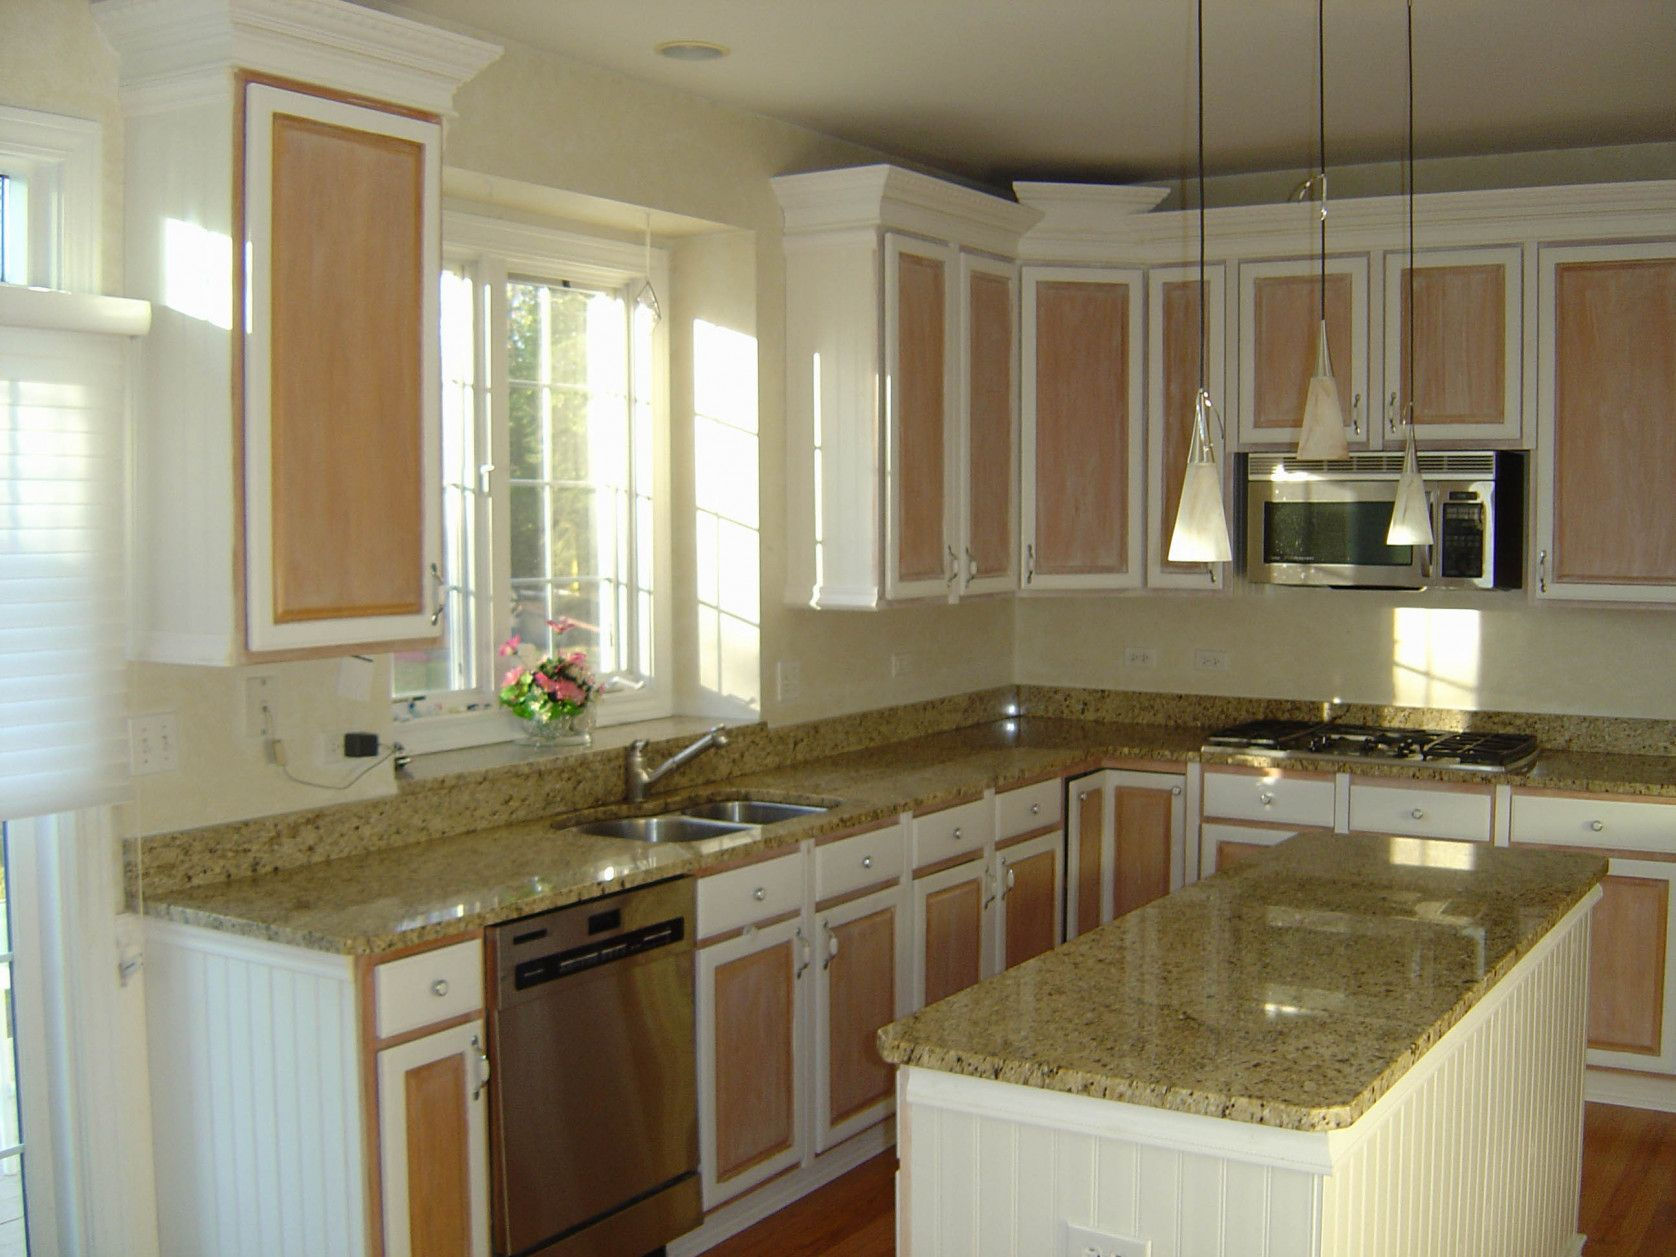 much do how cabinets remodel elegant best google a kitchen of magnet it newbury re search laminating to cost grey does